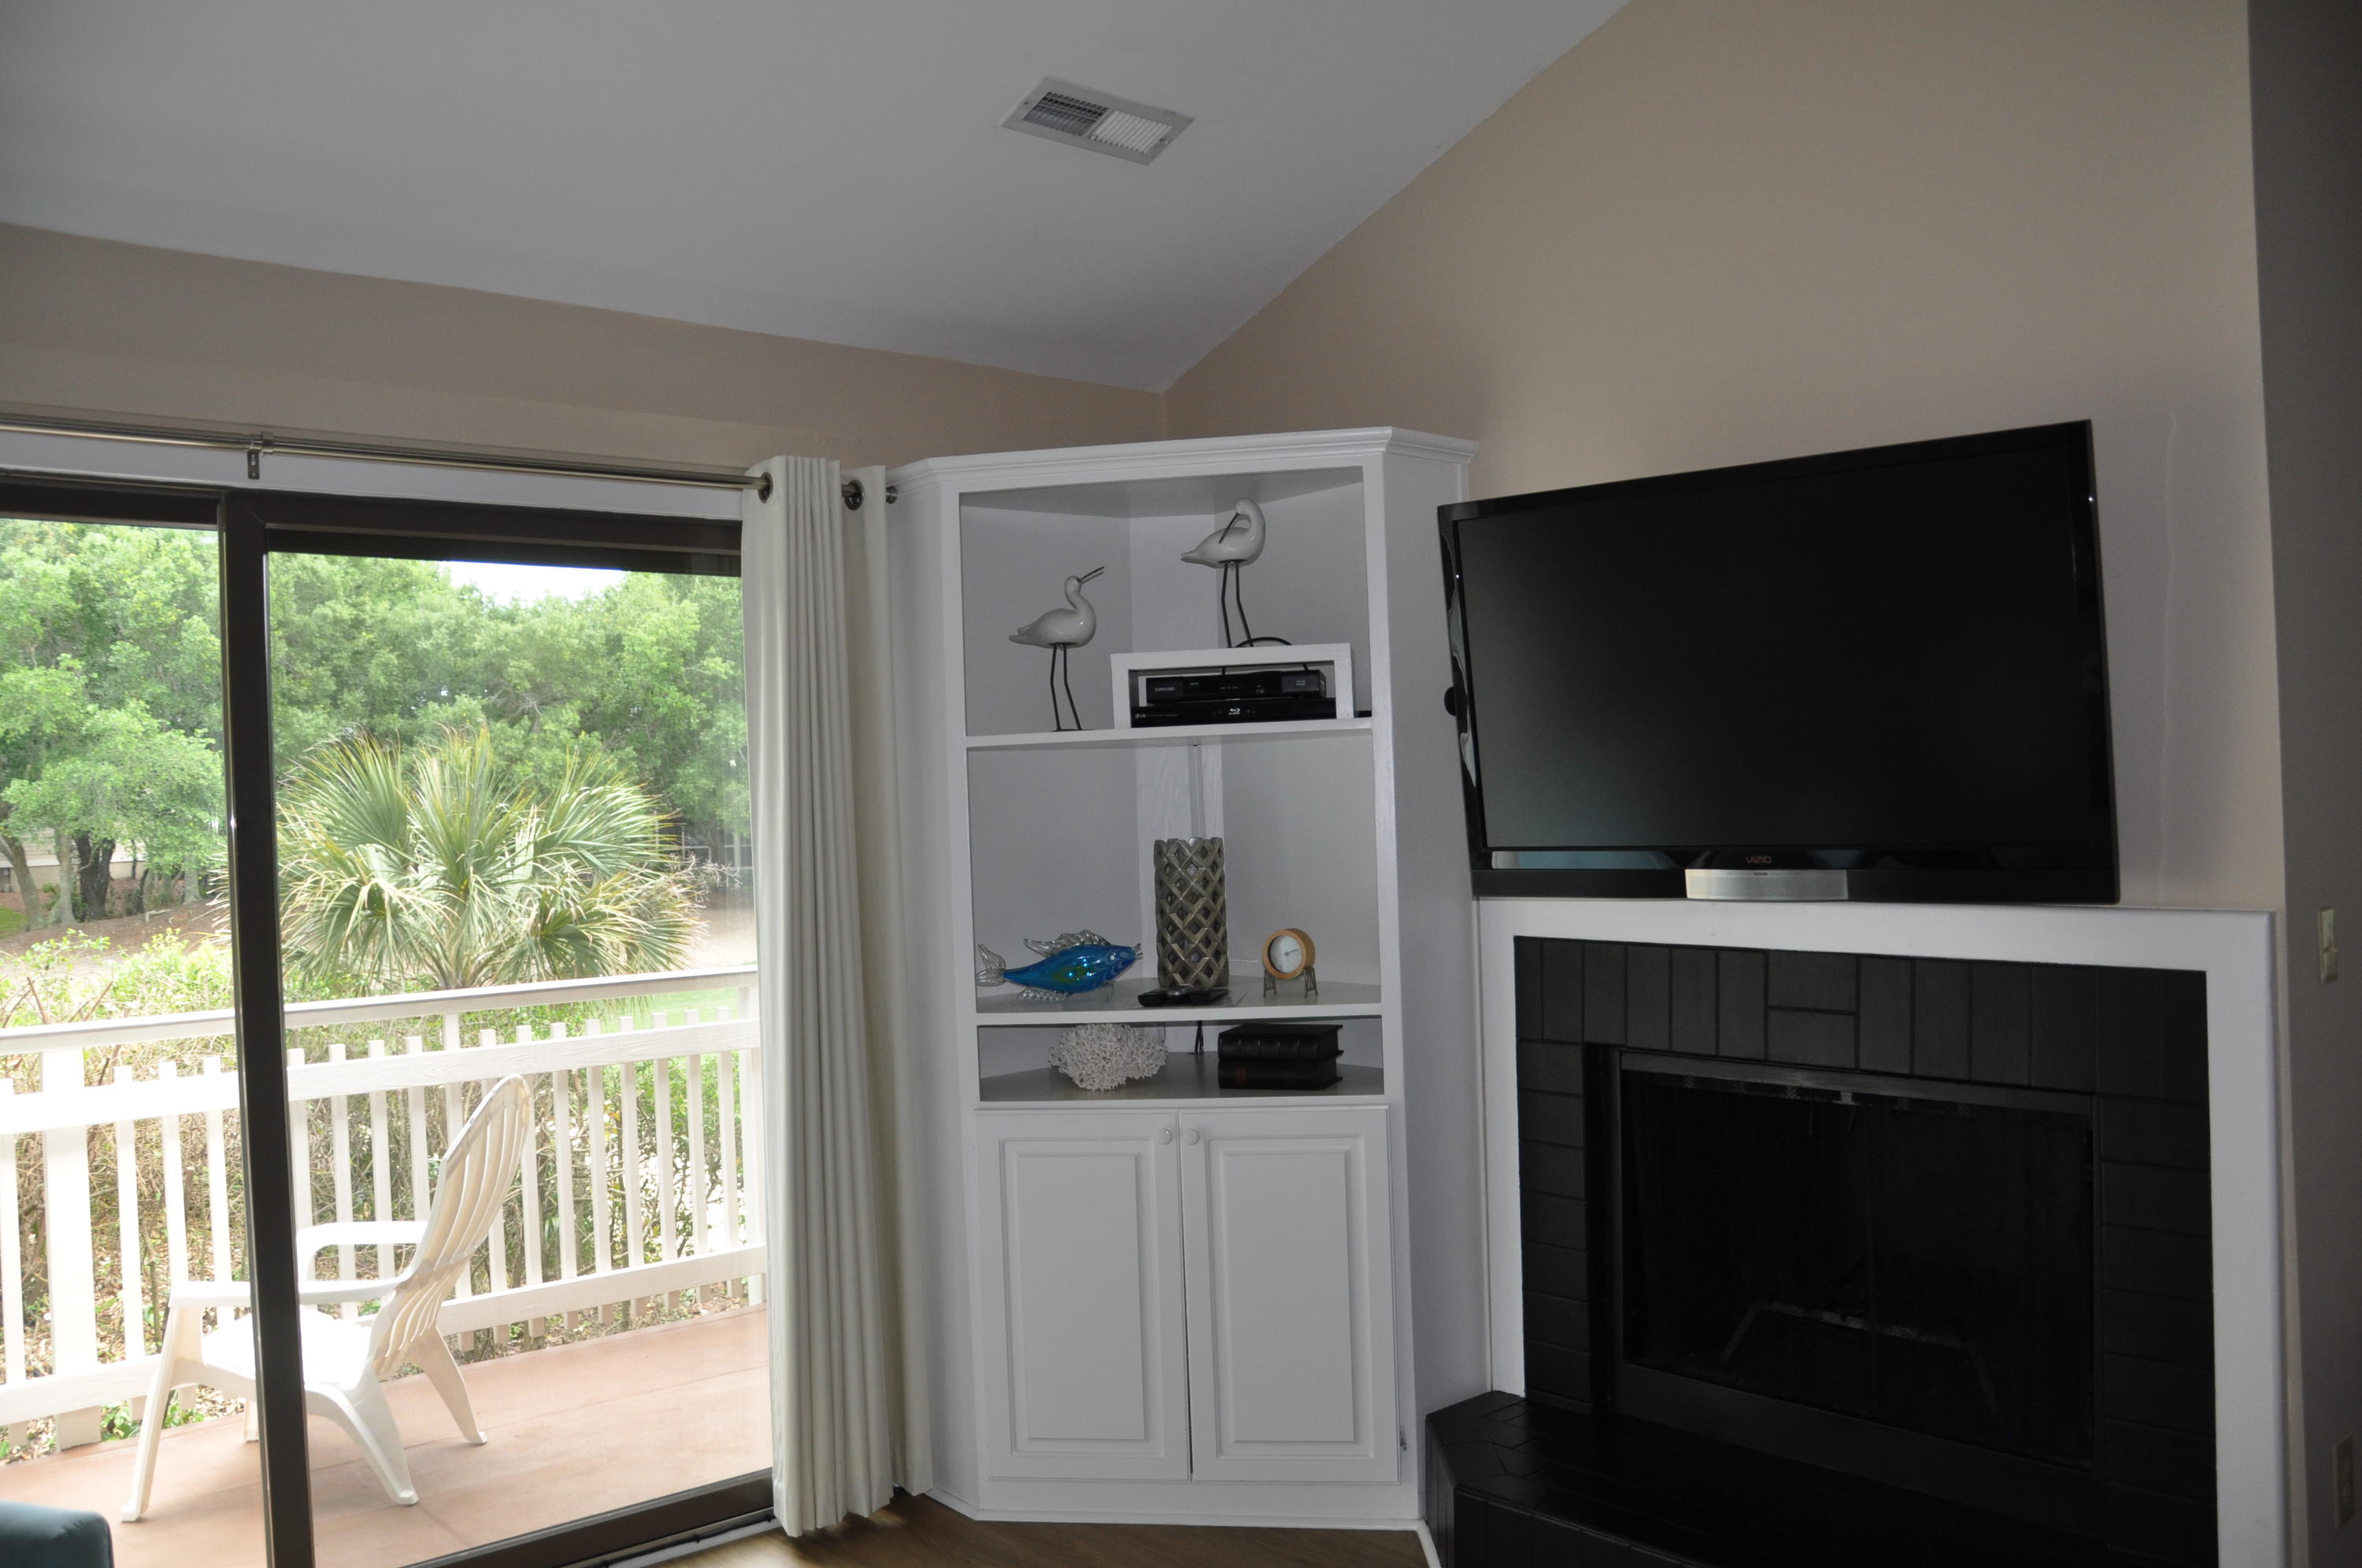 Fairway Villas Homes For Sale - 25 Fairway Dunes (1/6 Share), Isle of Palms, SC - 2